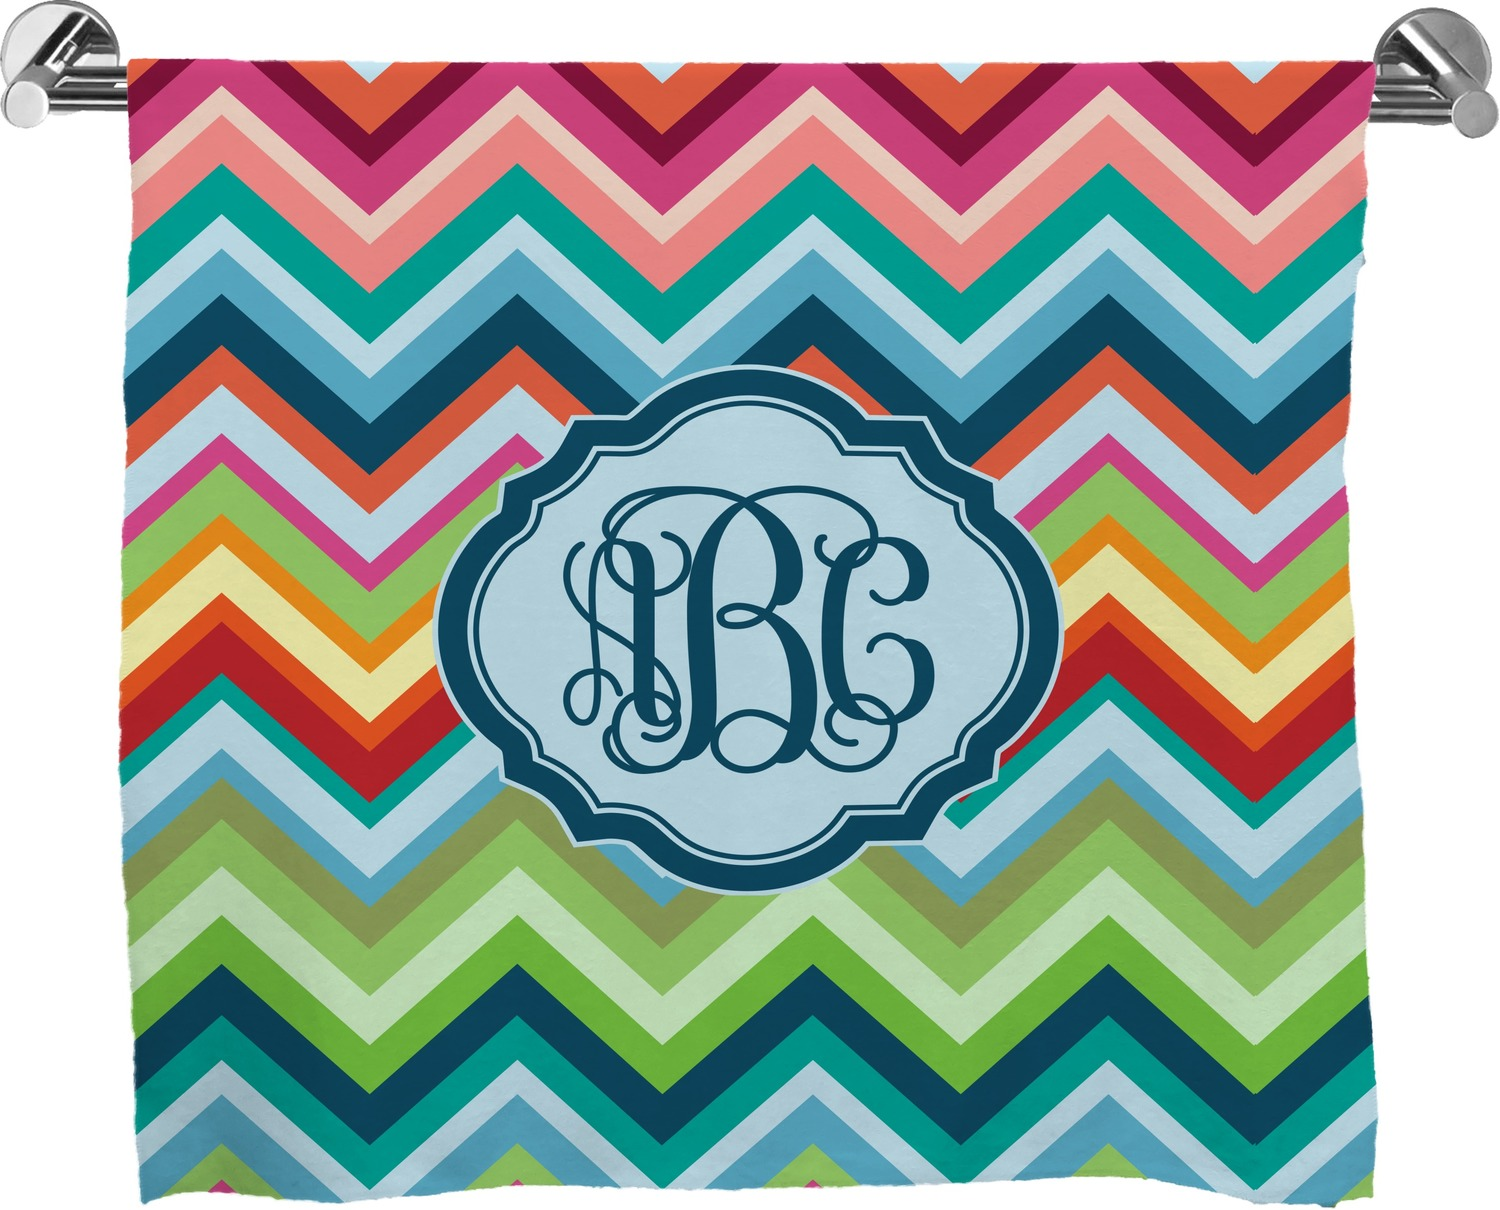 Creative monogrammed bath towels with personalized towel of monogrammed towel set ideas